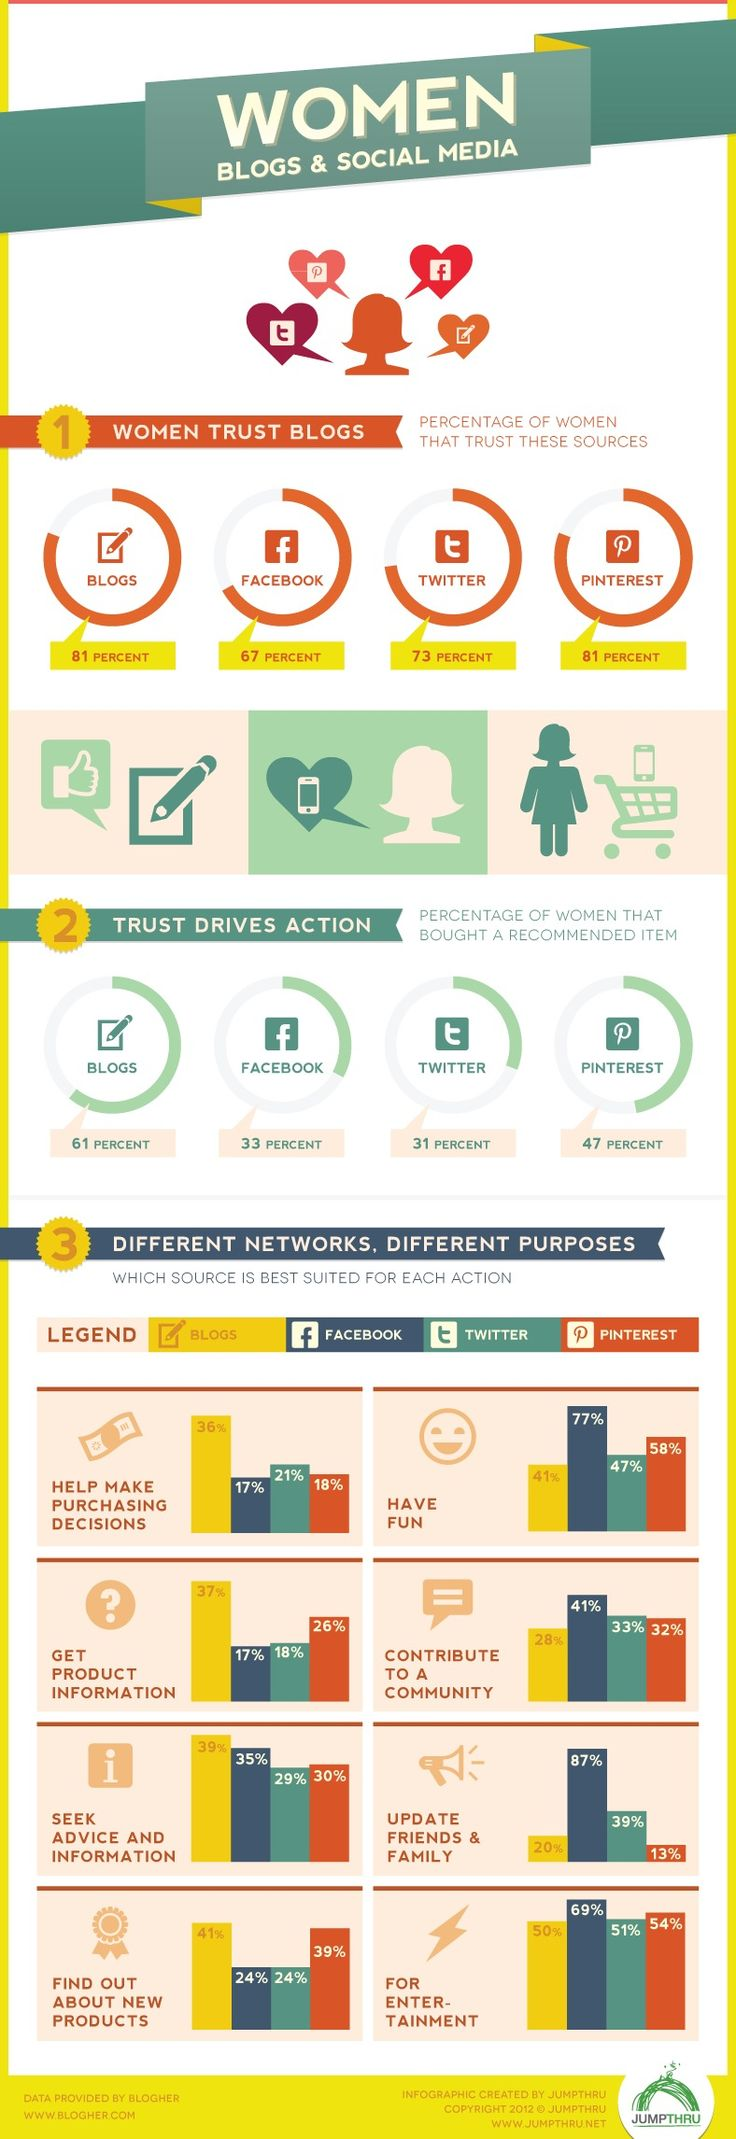 Social media is a crucial component to remember when marketing products to a predominantly female demographic.  I try to instill this in my students before they hit the job market.  This graphic illustrates the point and importance of it.